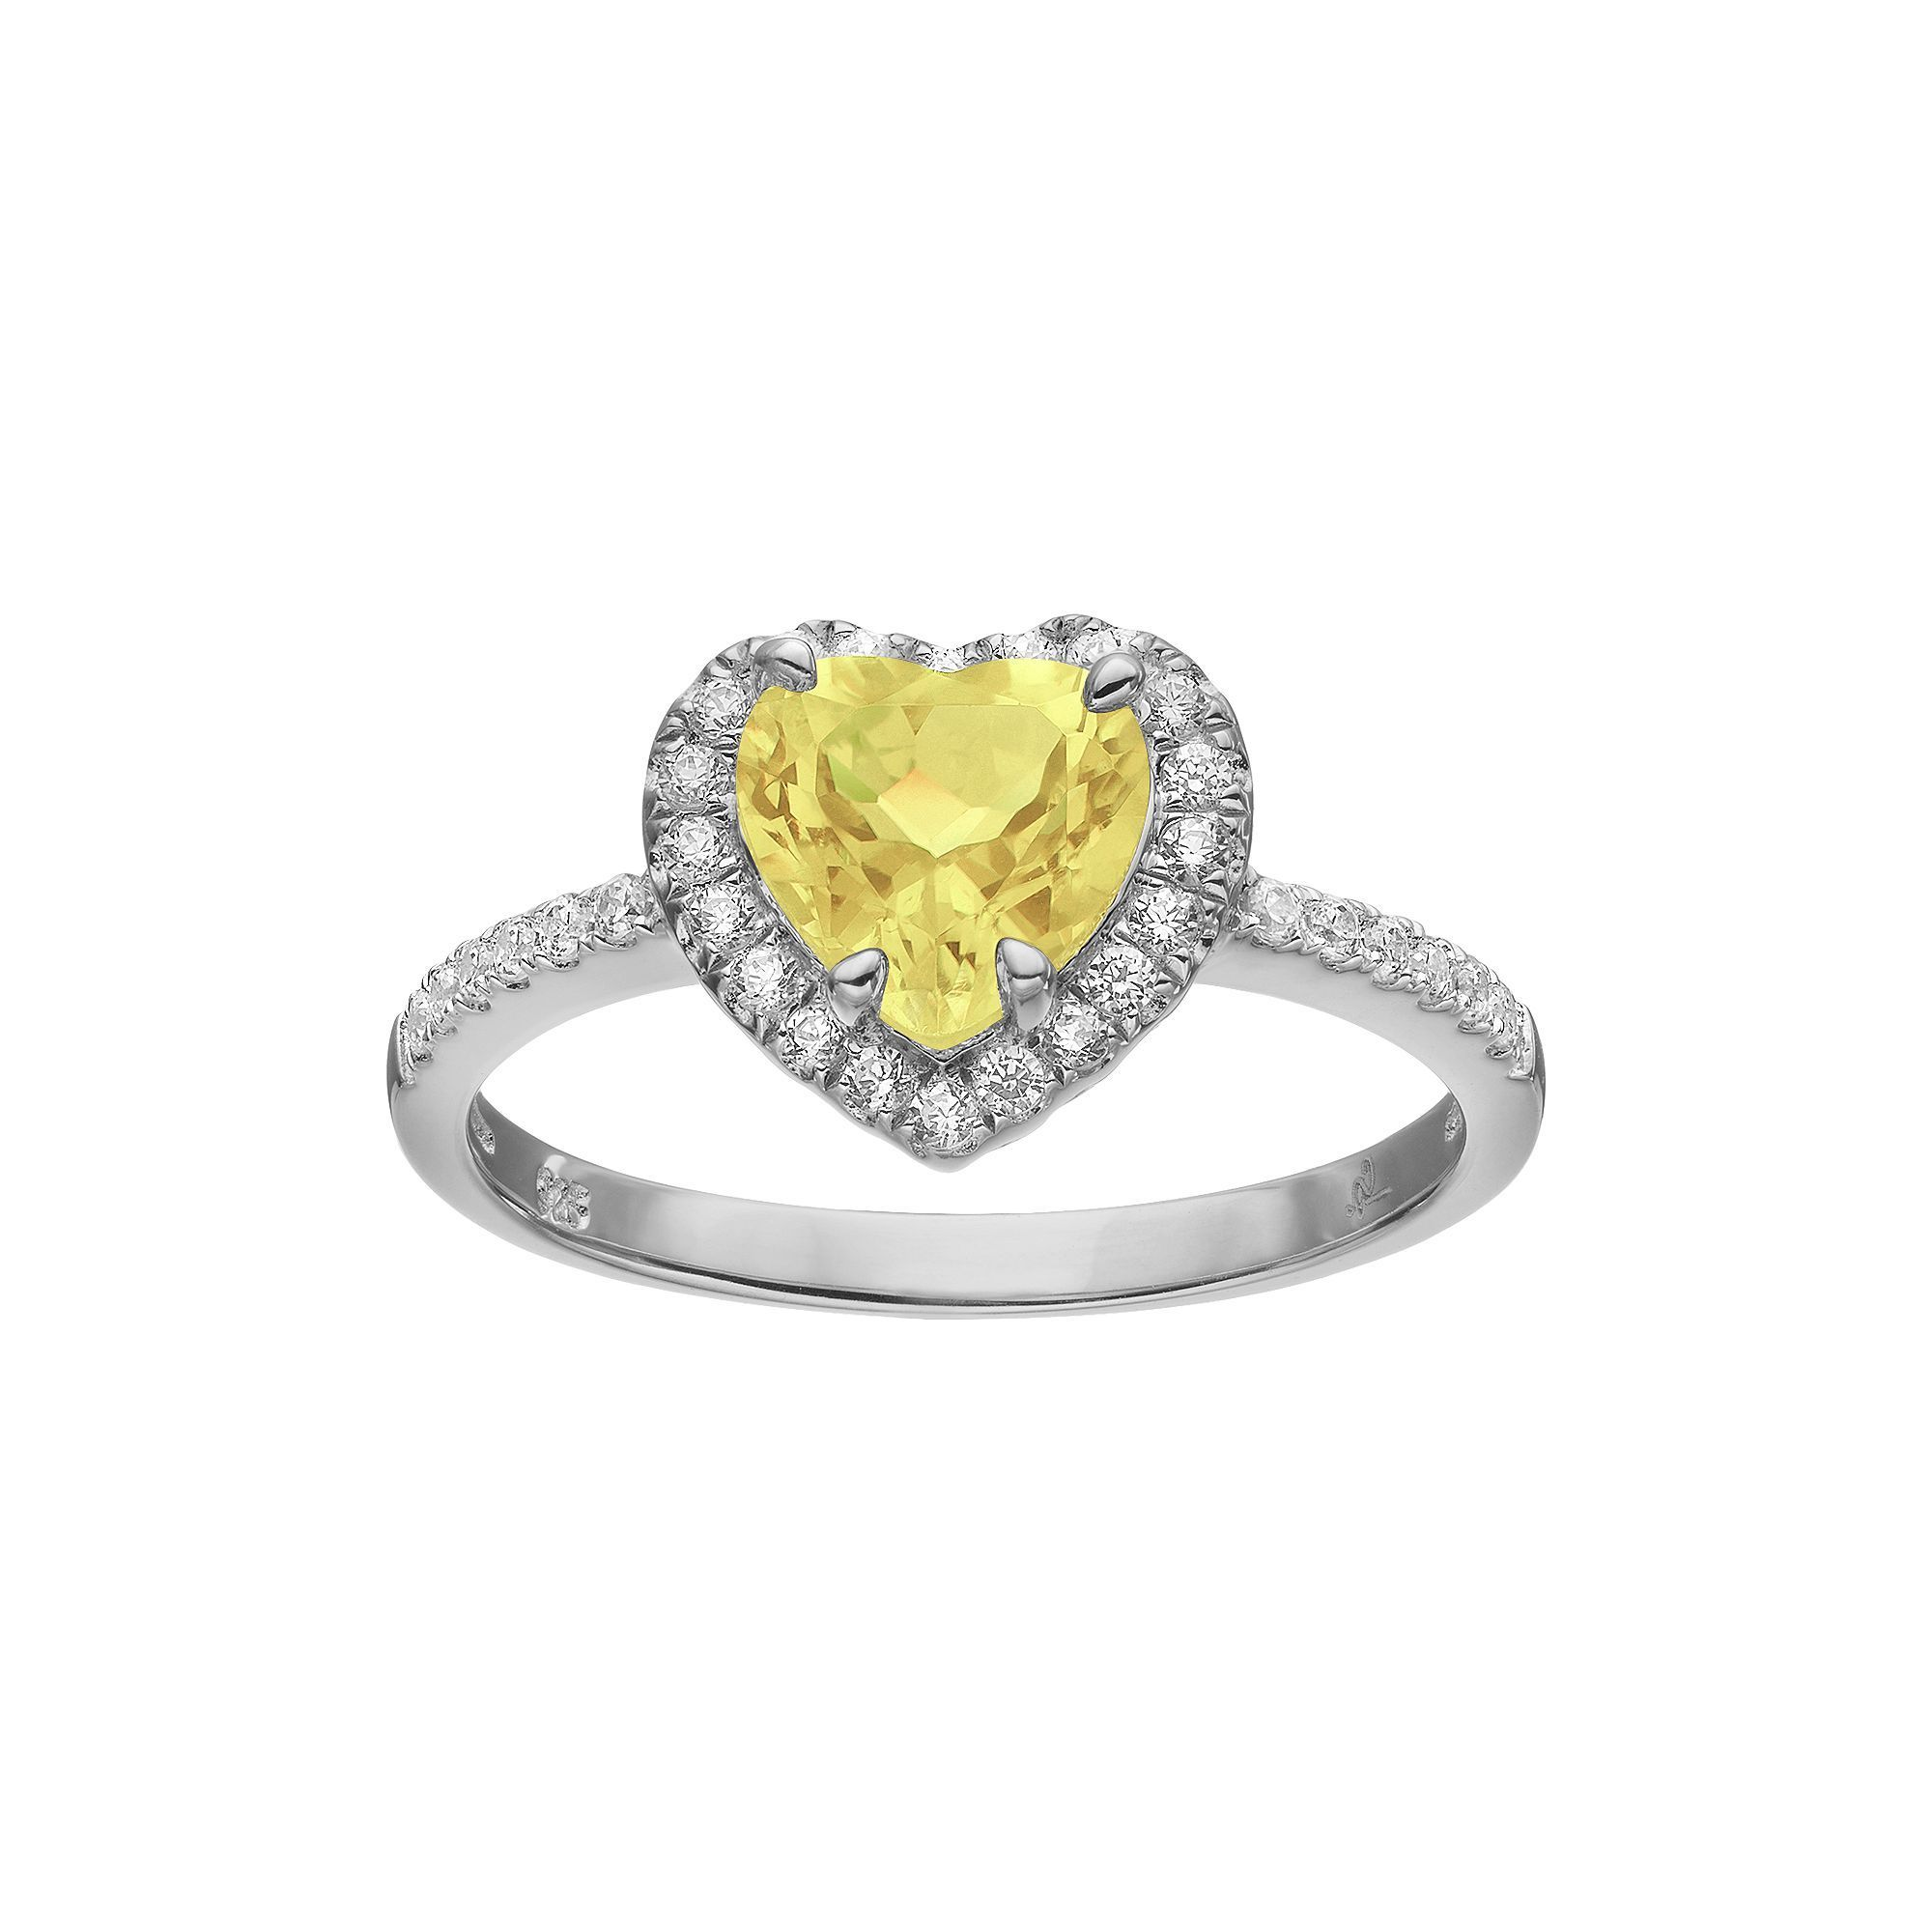 Rebecca Sloane Citrine Cubic Zirconia Platinum Over Silver Heart Halo Ring Halo Engagement Rings Wedding Ring Designs Beautiful Wedding Rings